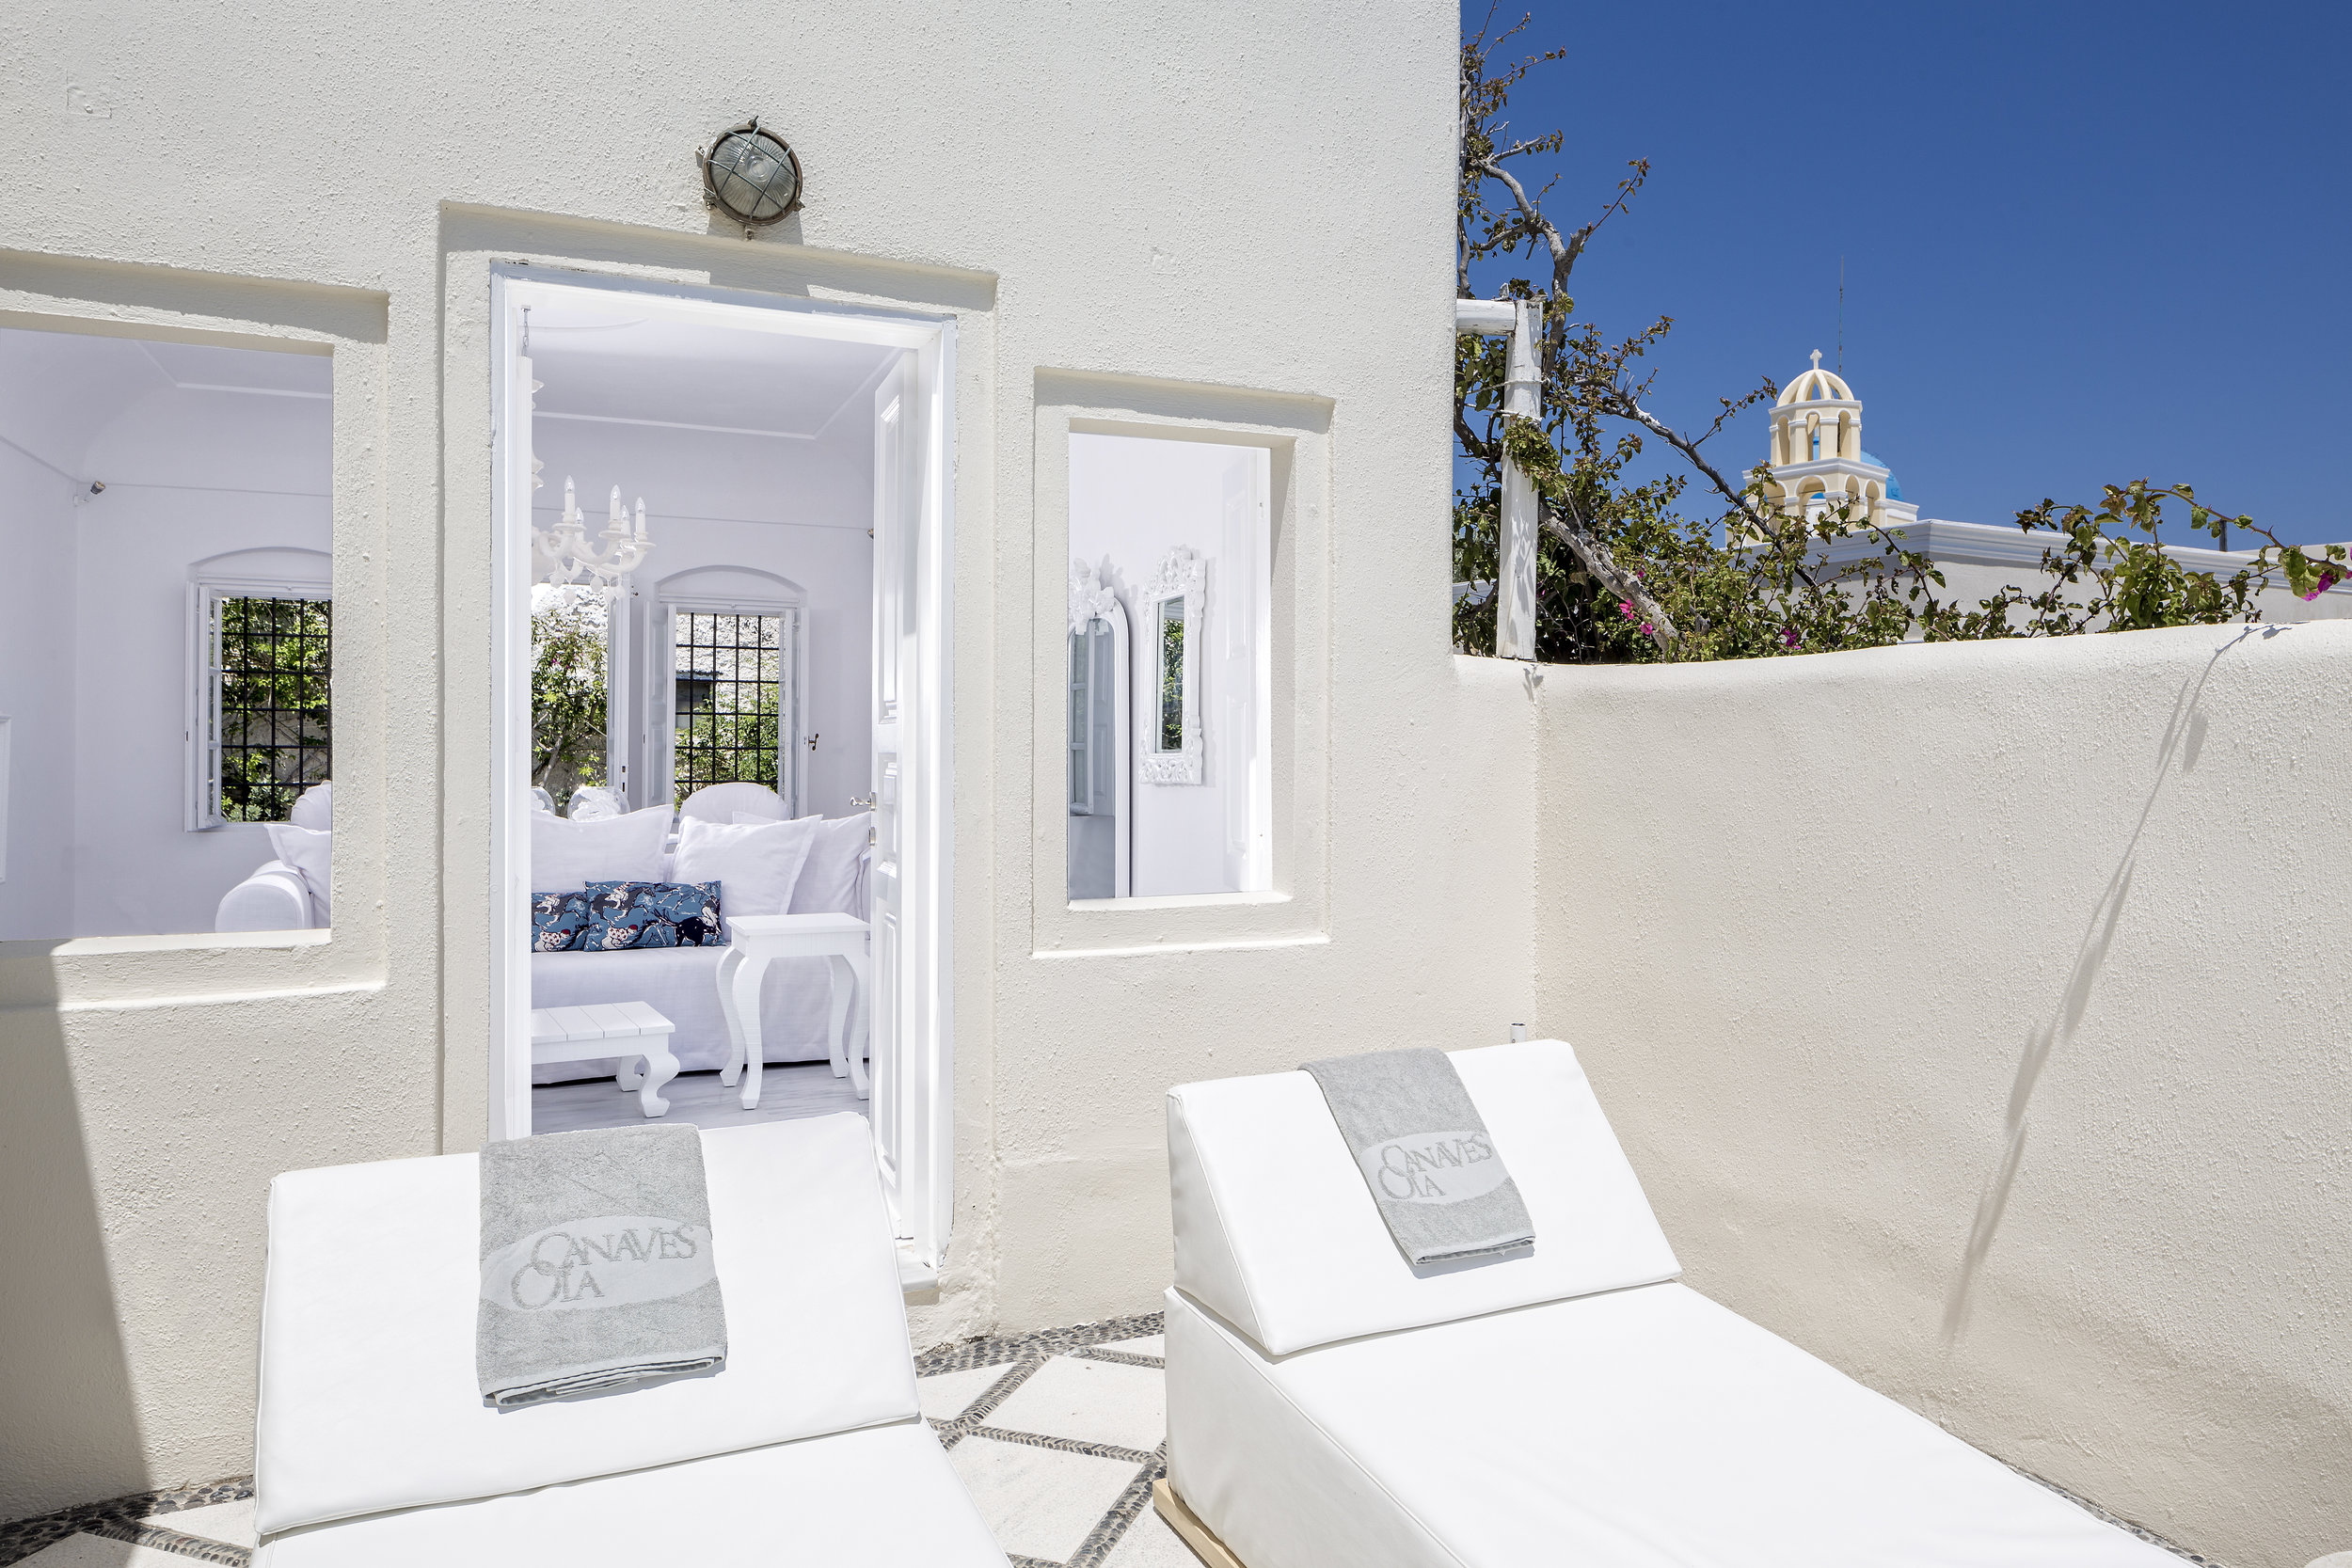 Canaves Oia Suites Renovation 2014_15.jpg